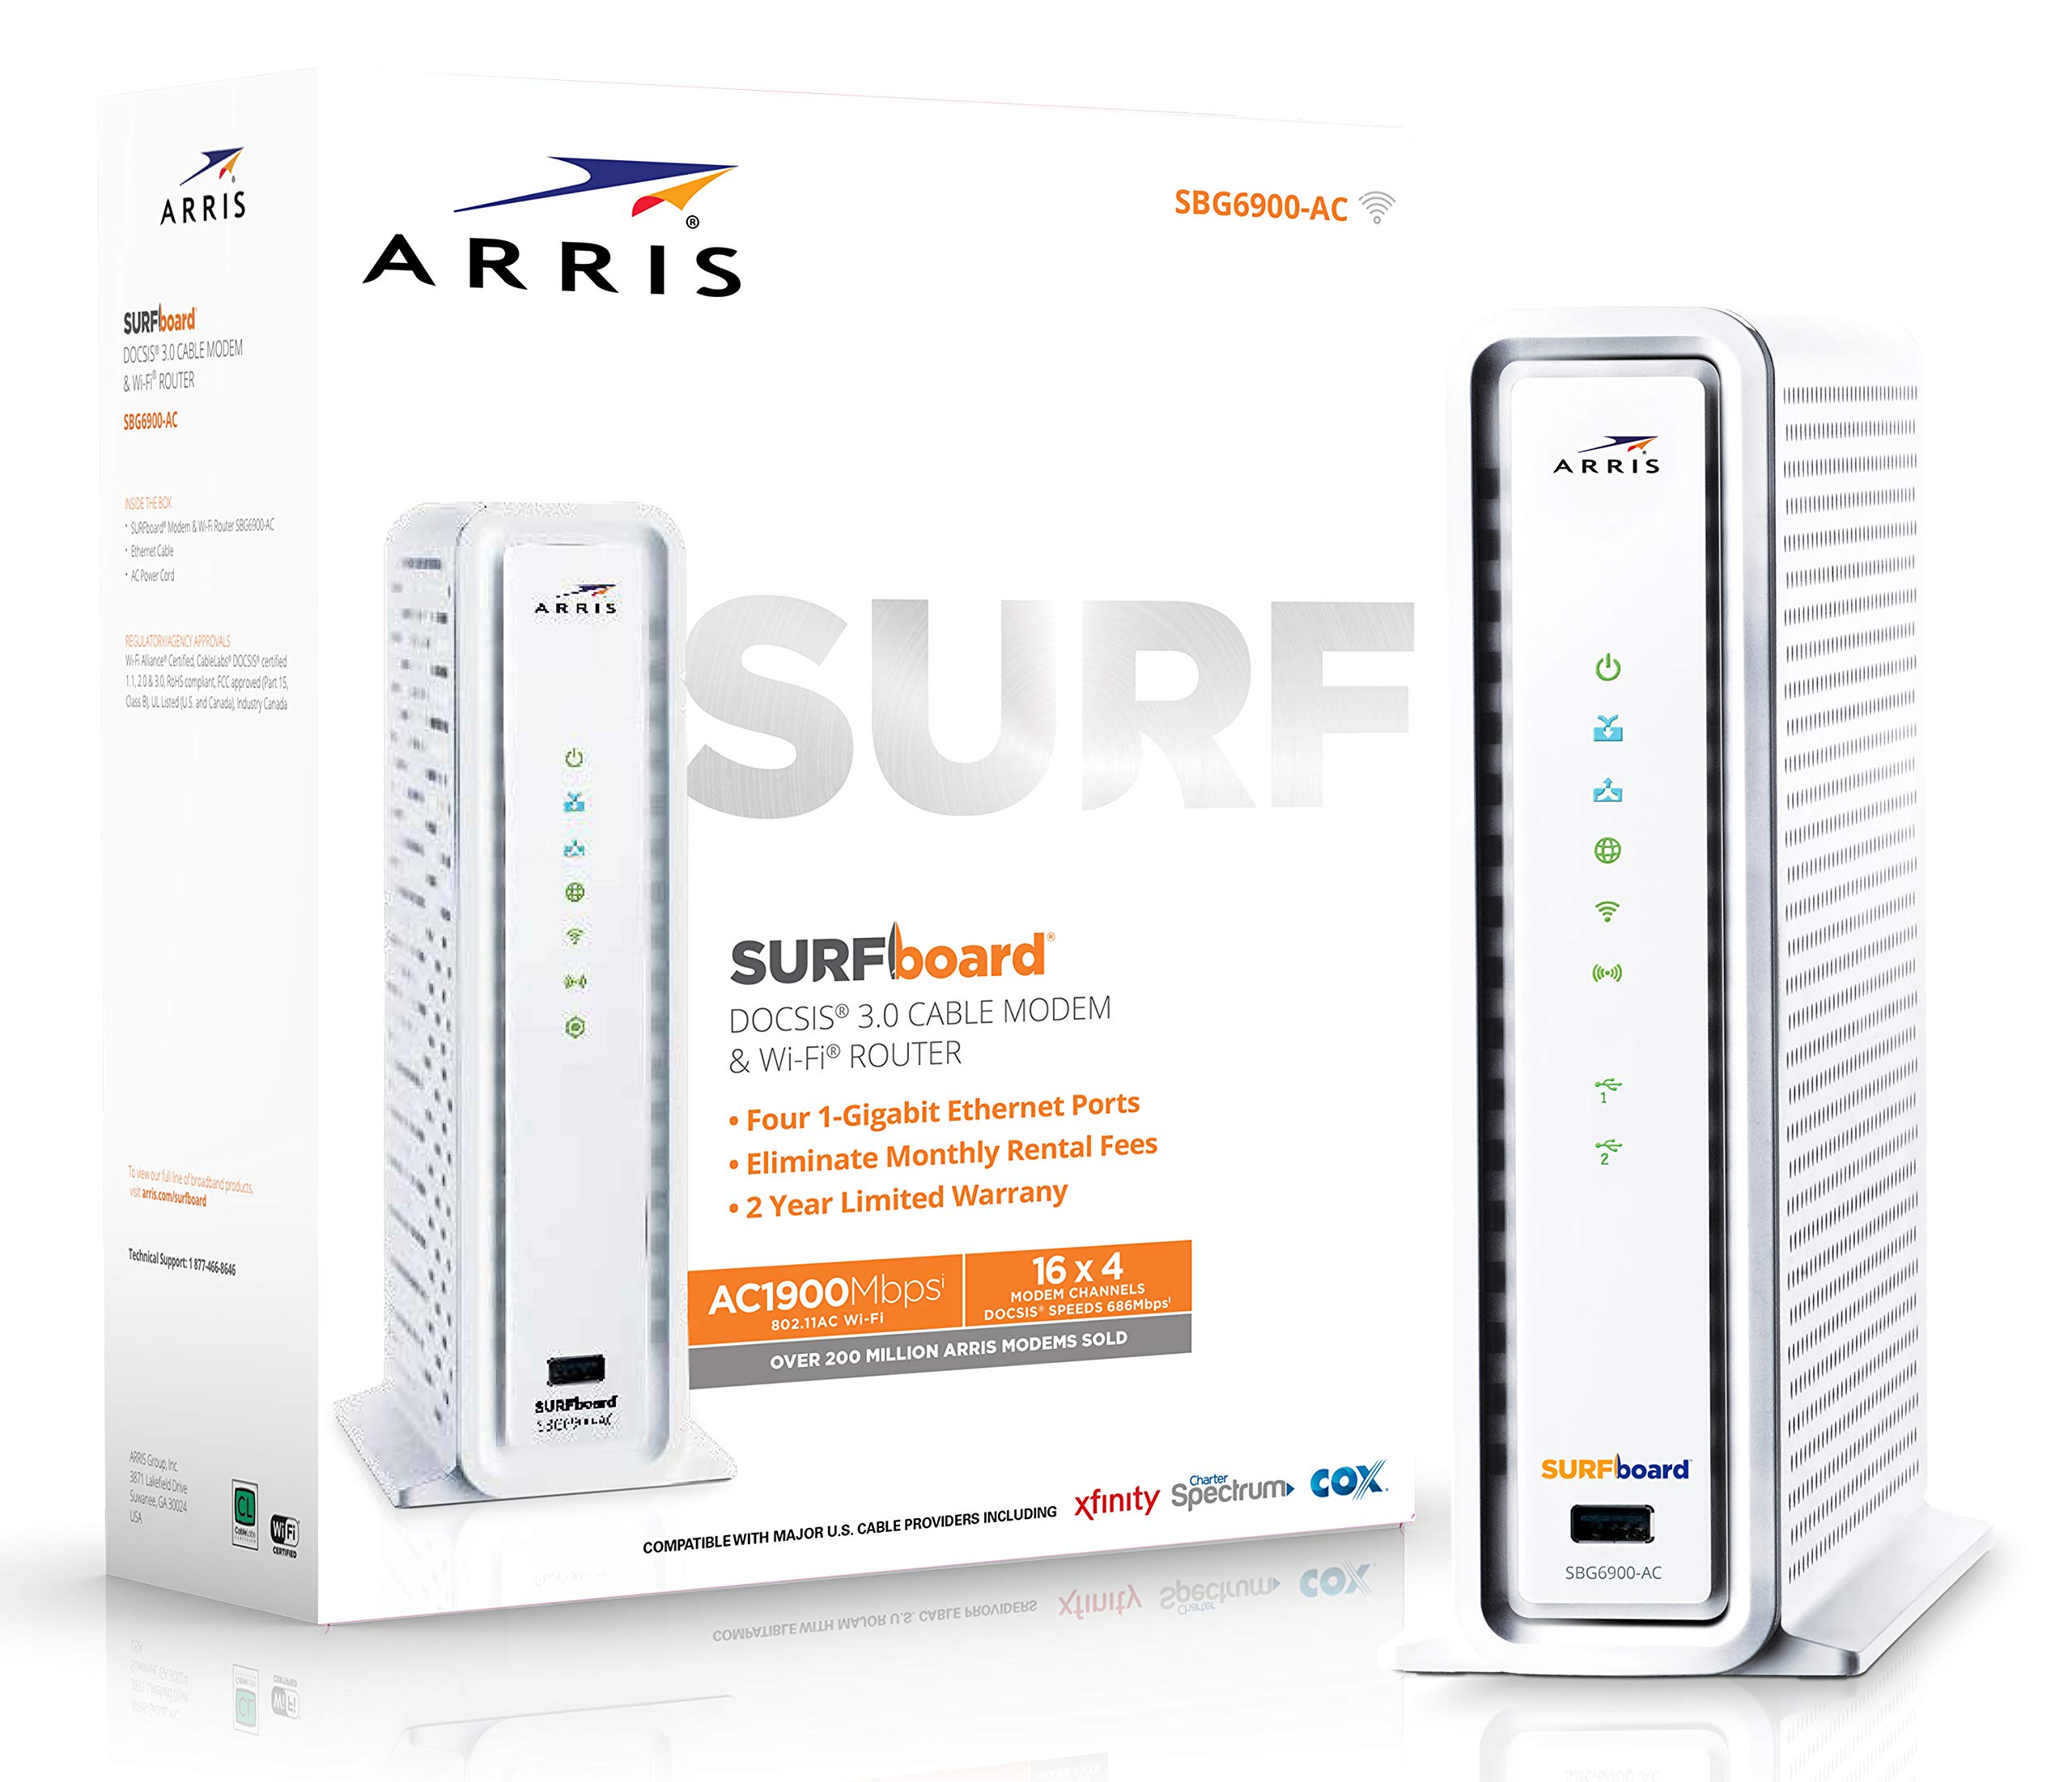 ARRIS SURFboard SBG6900AC Docsis 3.0 16x4 Cable Modem/ Wi-Fi AC1900 Router - Retail Packaging - White by ARRIS